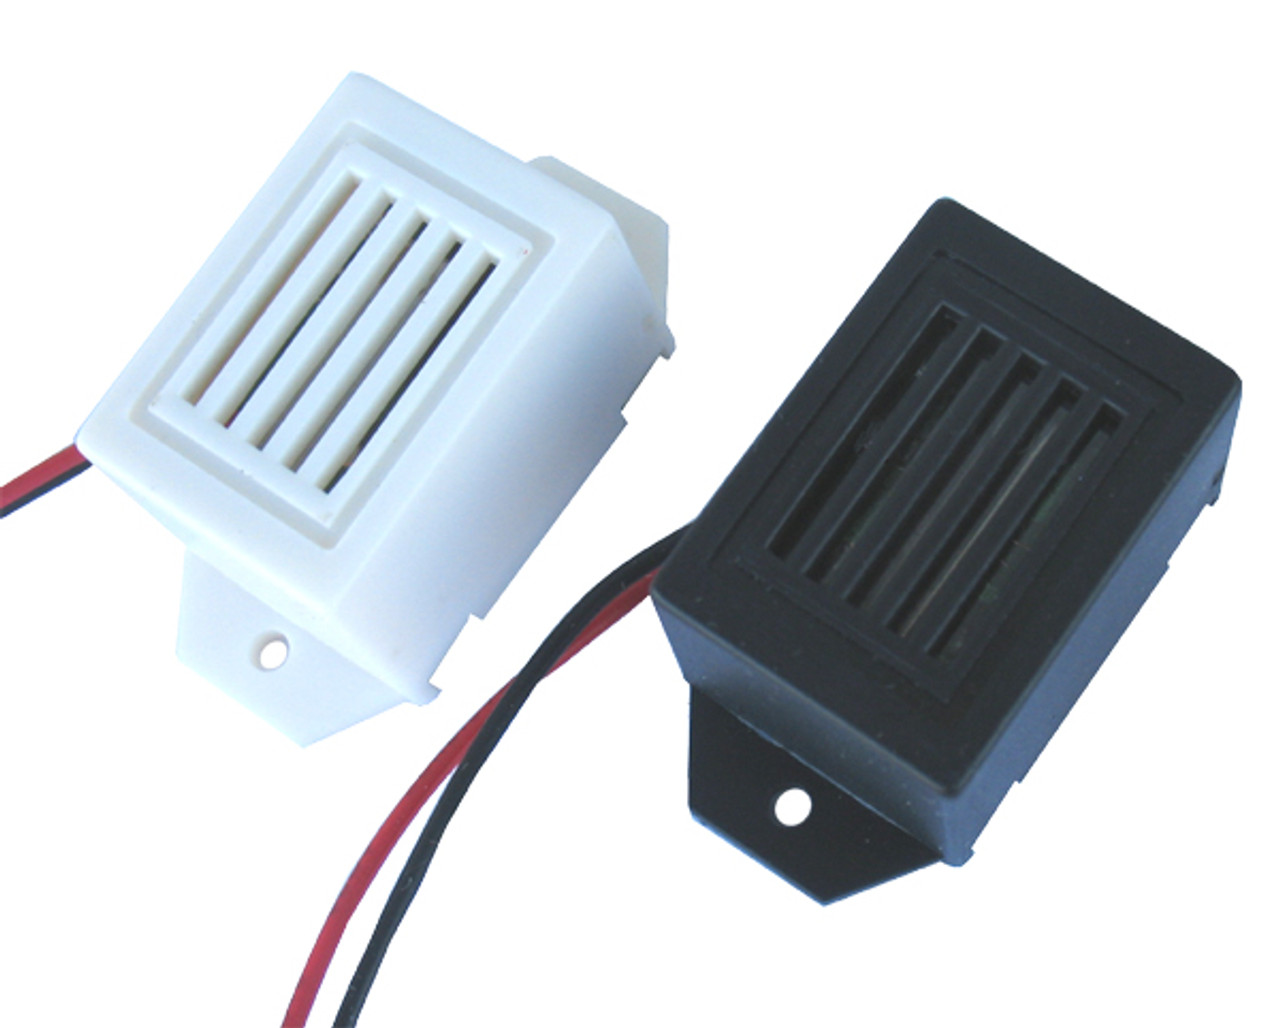 Low voltage buzzers (black and white)